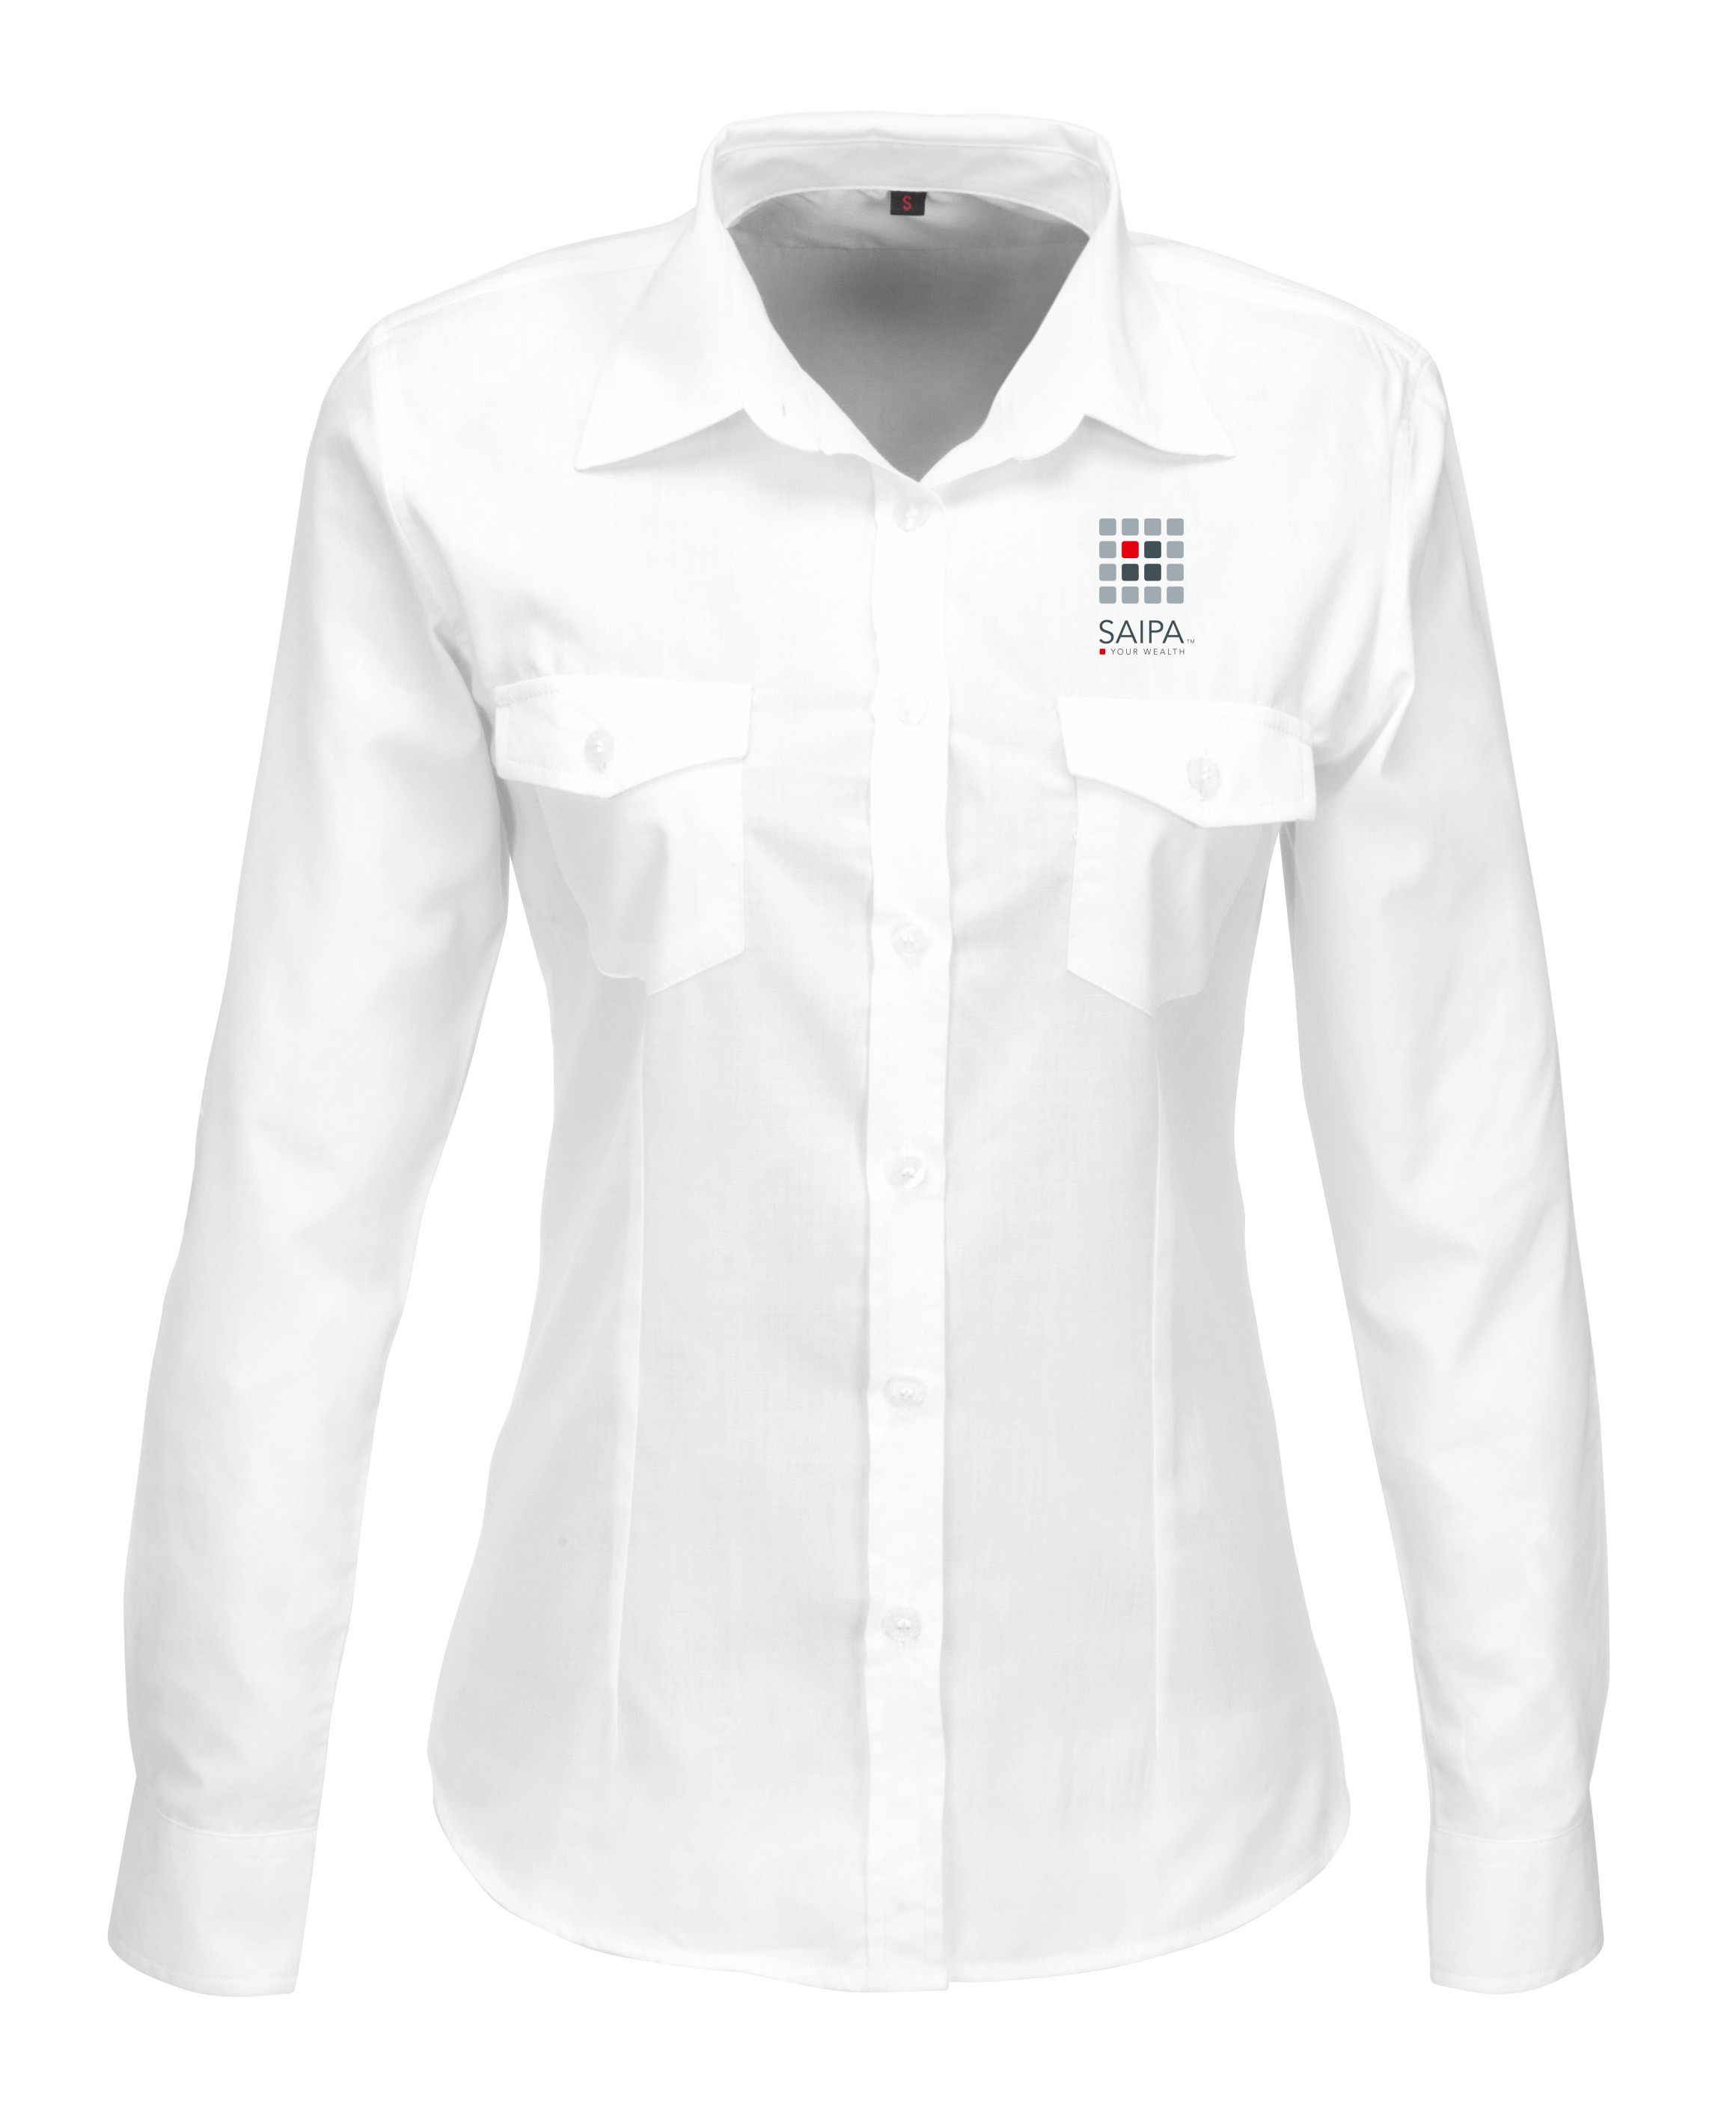 LADIES SHIRT LONG SLEEVE WHITE - SAIPA 40fc6d92dc23